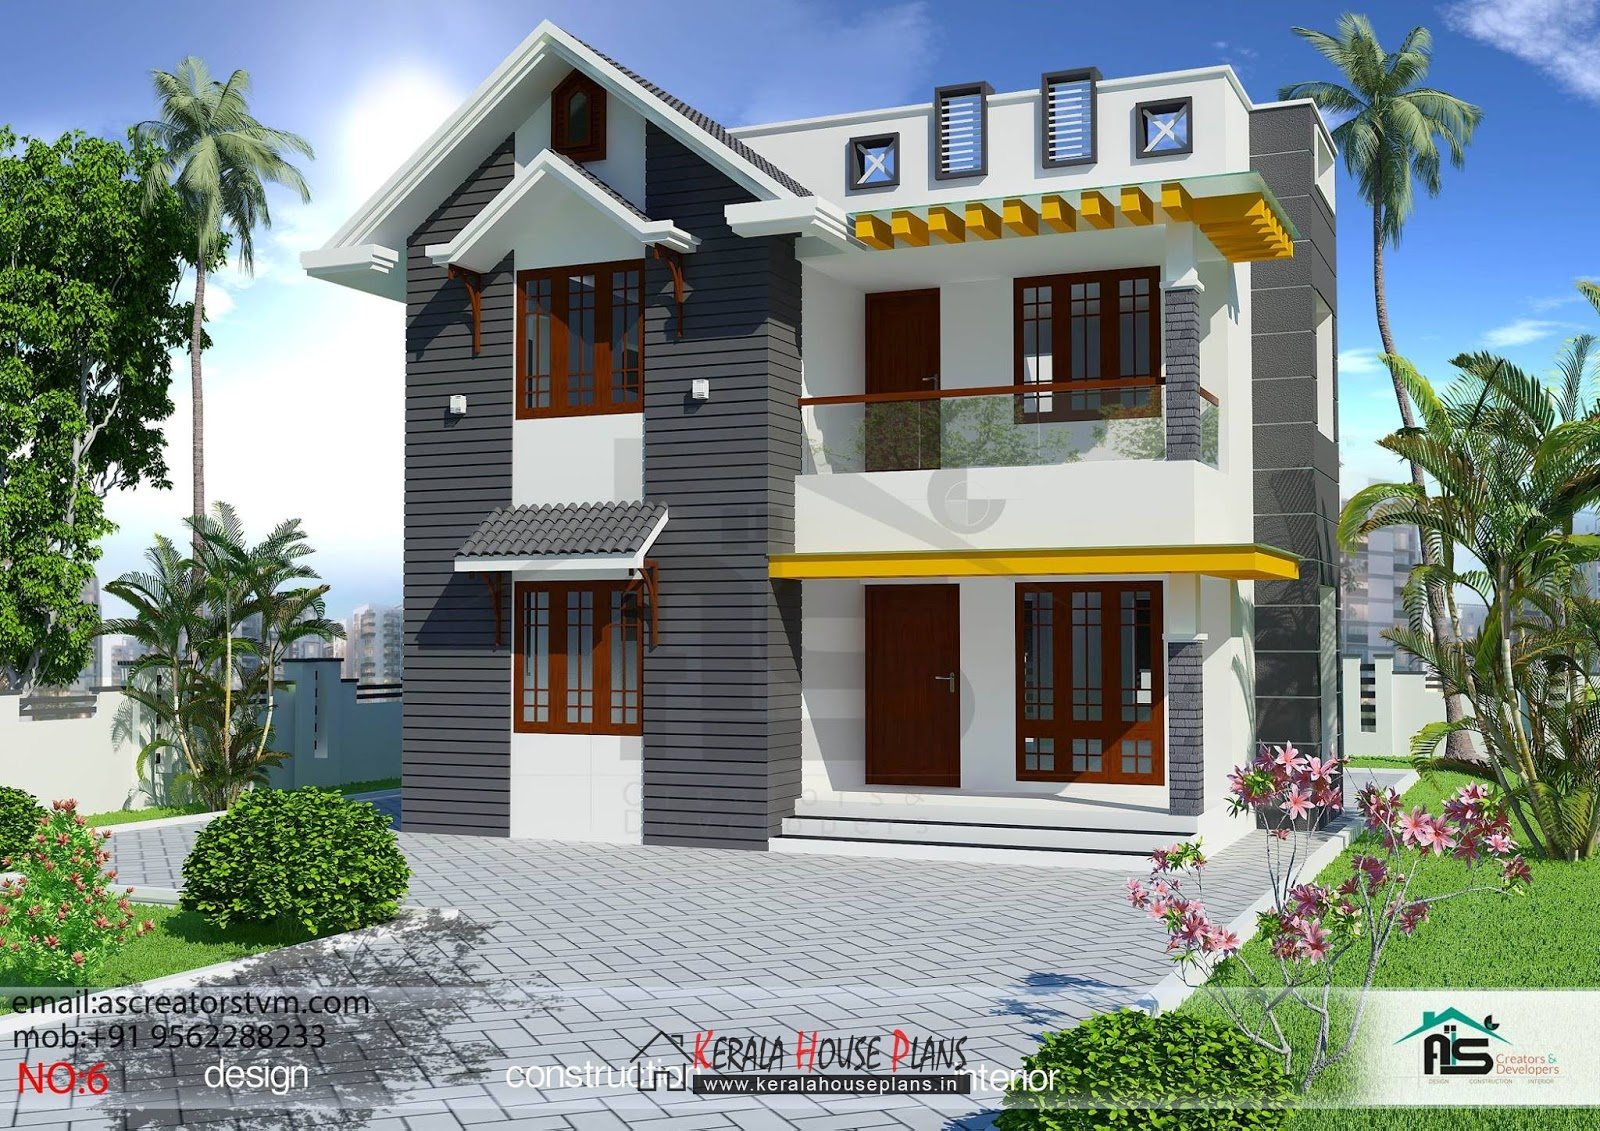 3 bedroom house plans in kerala double floor kerala for 3 bedroom plan in kerala